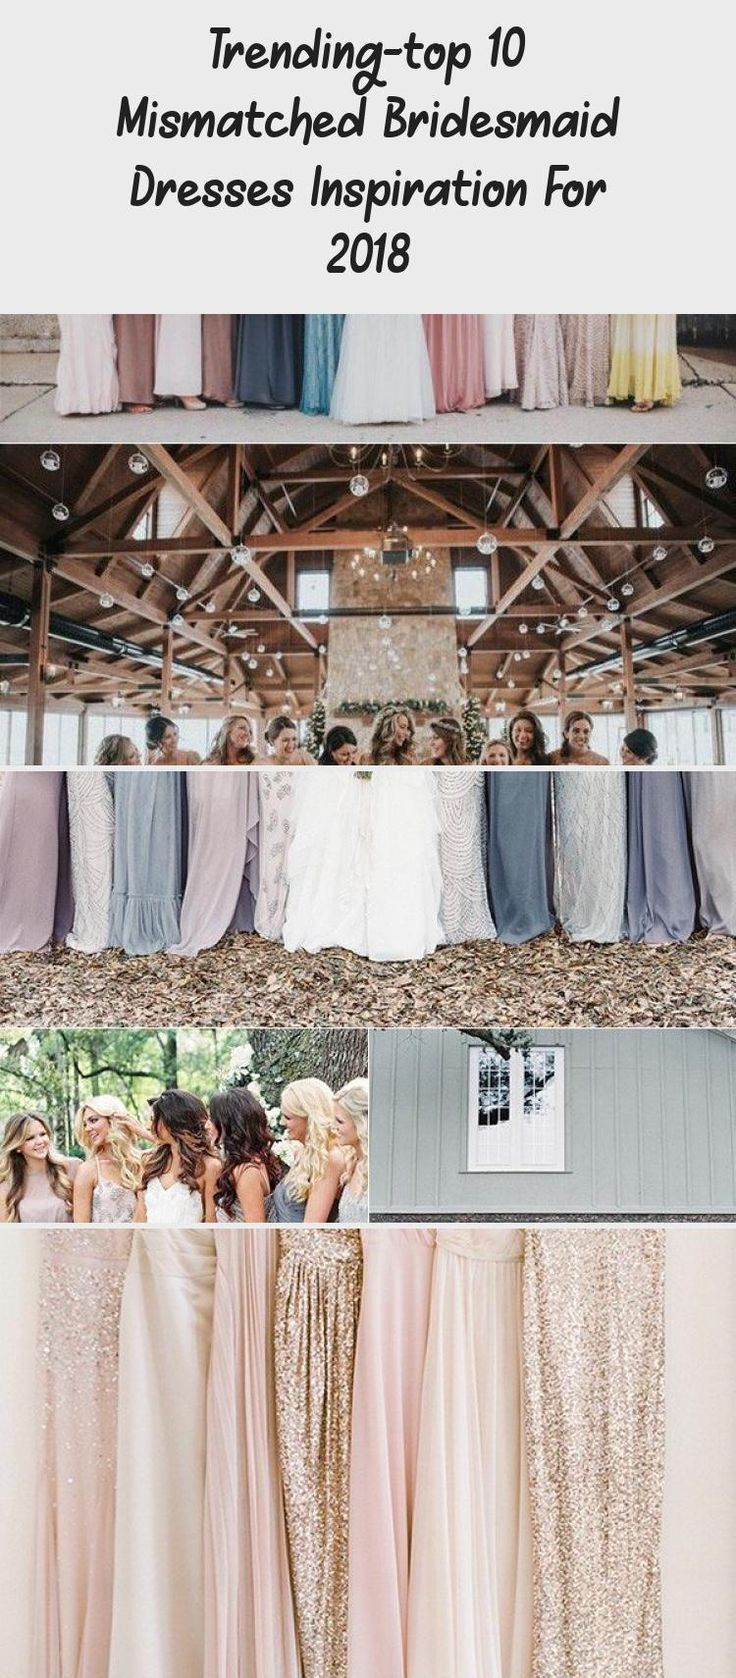 I like doing different color dresses and playing with the greys, blues, and purples. I think the different color greys is really pretty. #BridesmaidDressesMidi #SageBridesmaidDresses #OffTheShoulderBridesmaidDresses #GrayBridesmaidDresses #BridesmaidDressesFall